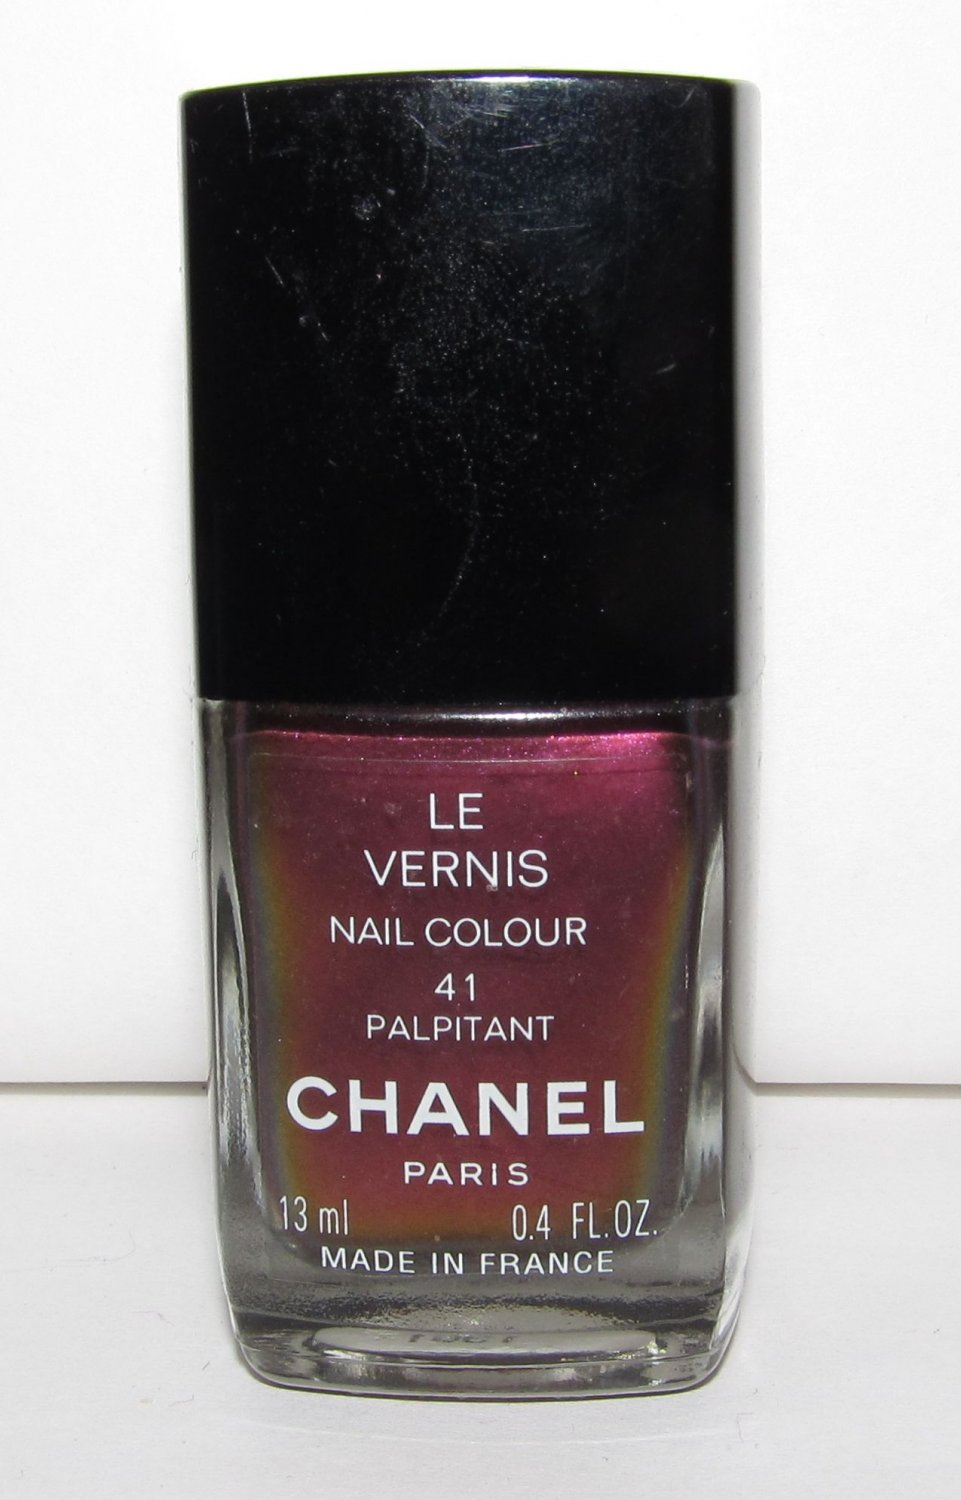 CHANEL Nail Polish - Palpitant 41 RARE VHTF - NEW